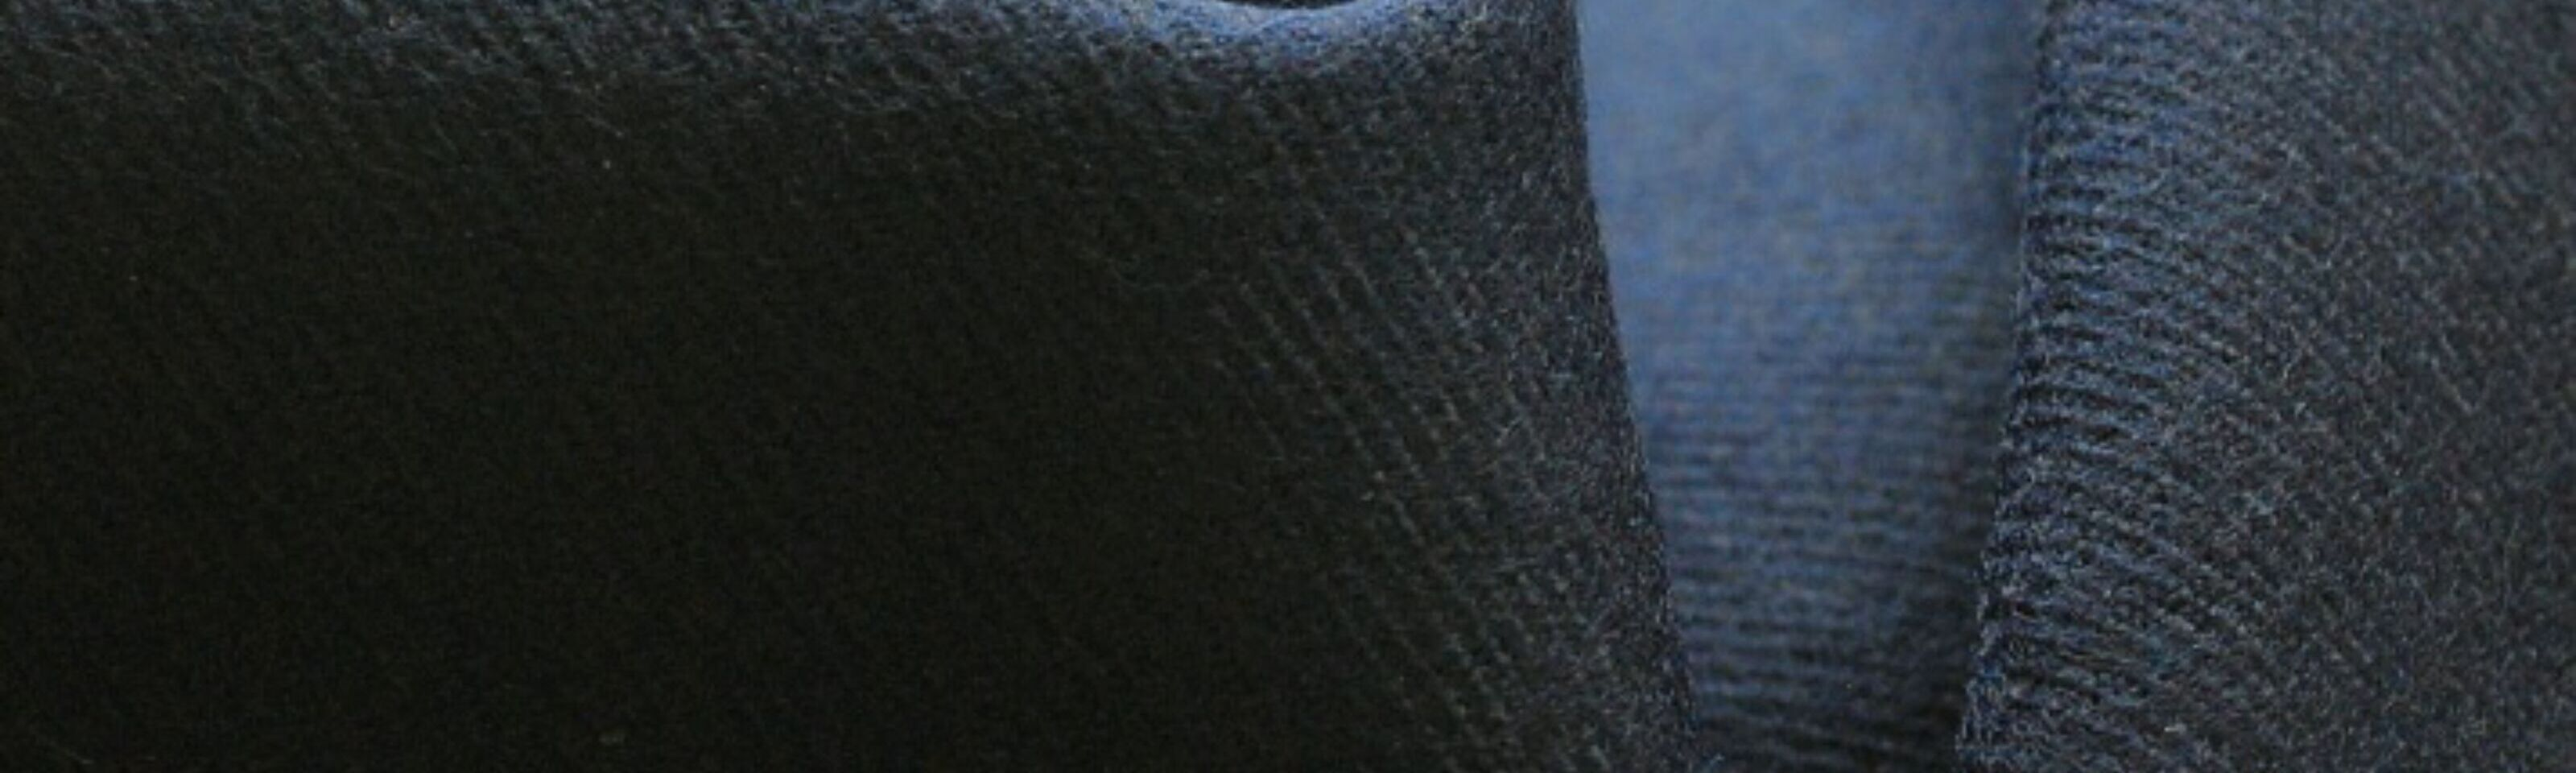 Melton_Navy blue_Wool suiting jacketing